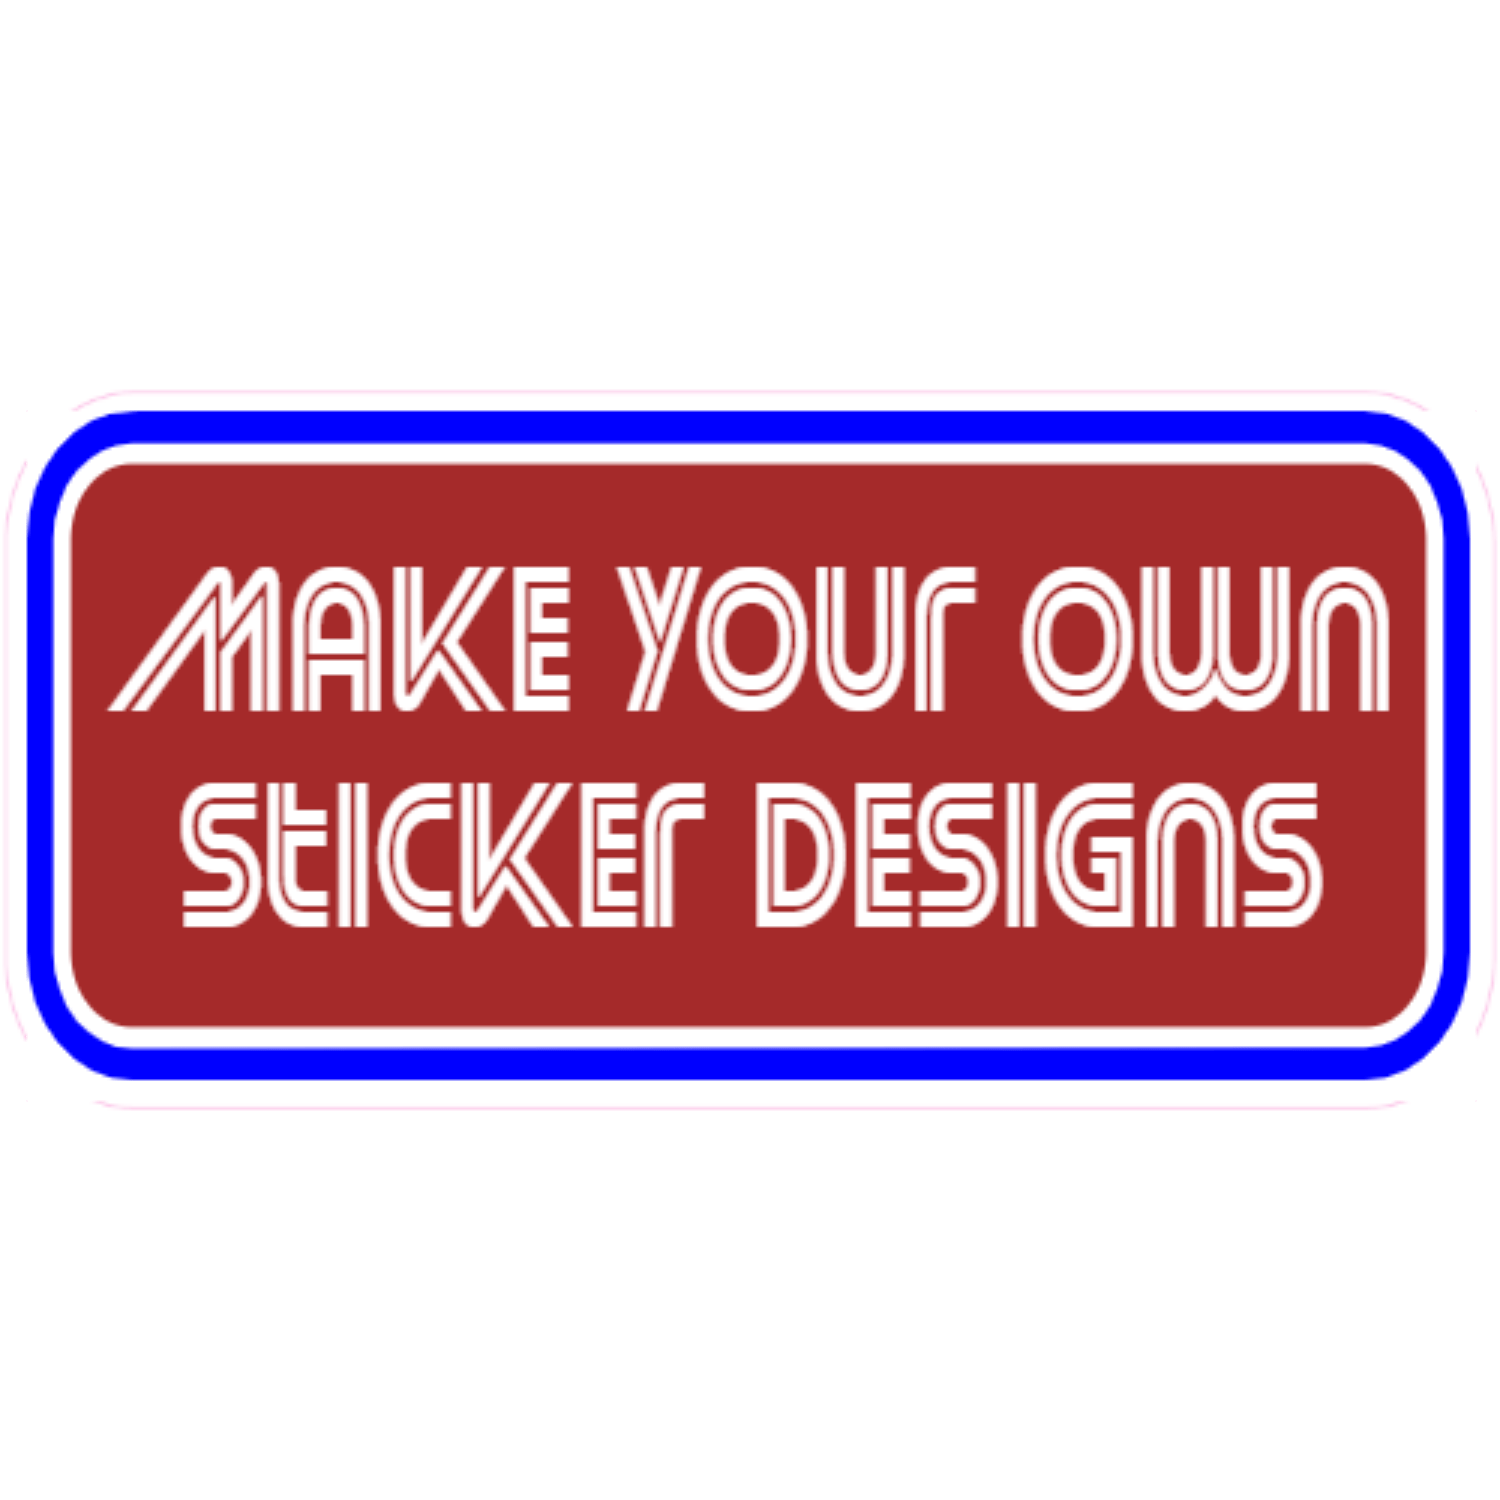 Make Your Own Rounded Rectangle Stickers FFFFFF Make Your Own Rectangle Stickers Rounded Cut